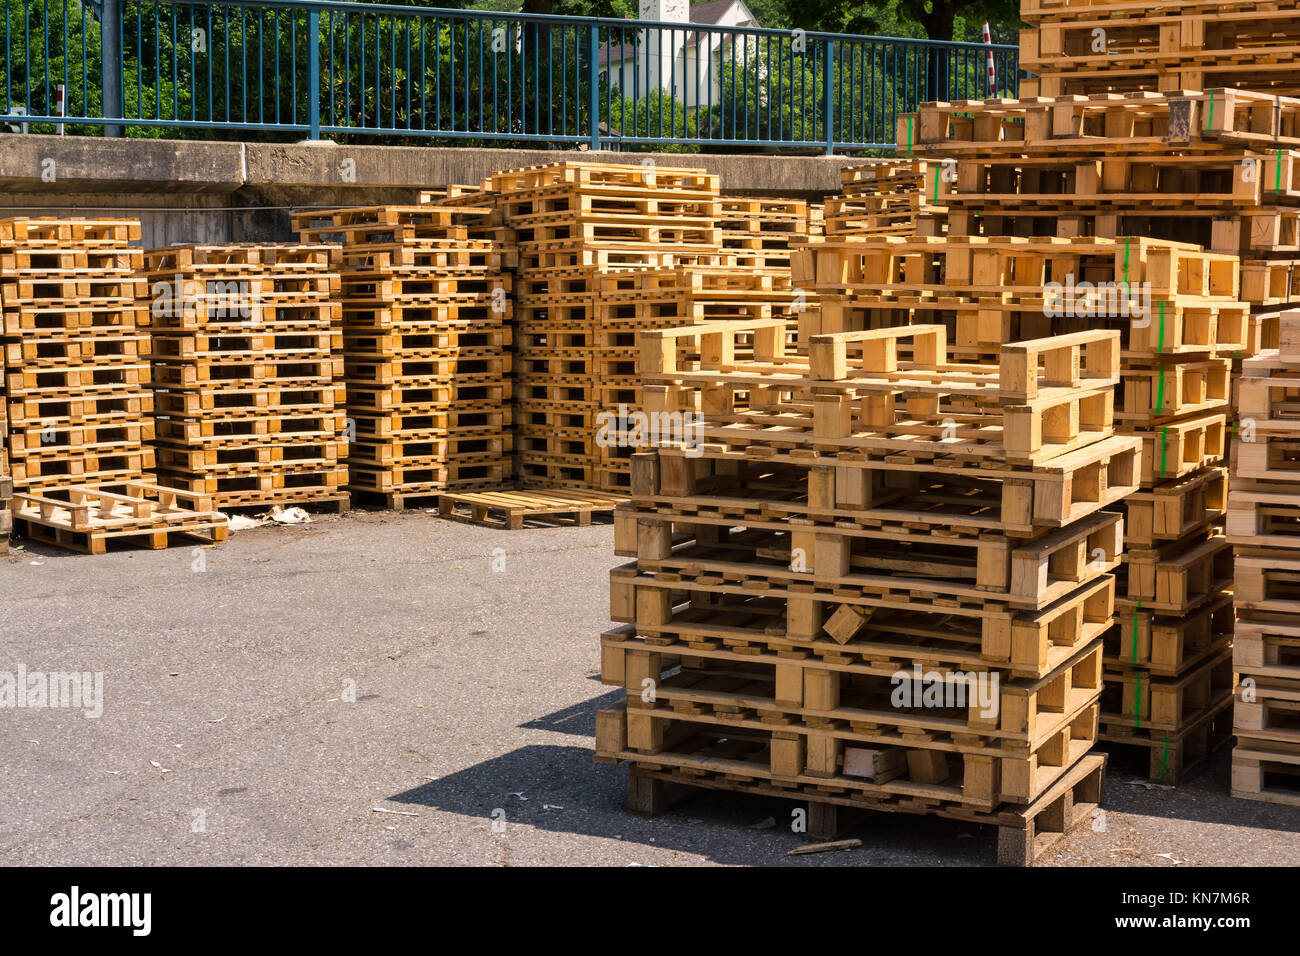 Wooden Palettes Industrial Usage Stack Closeup Factory Company Storage Empty - Stock Image